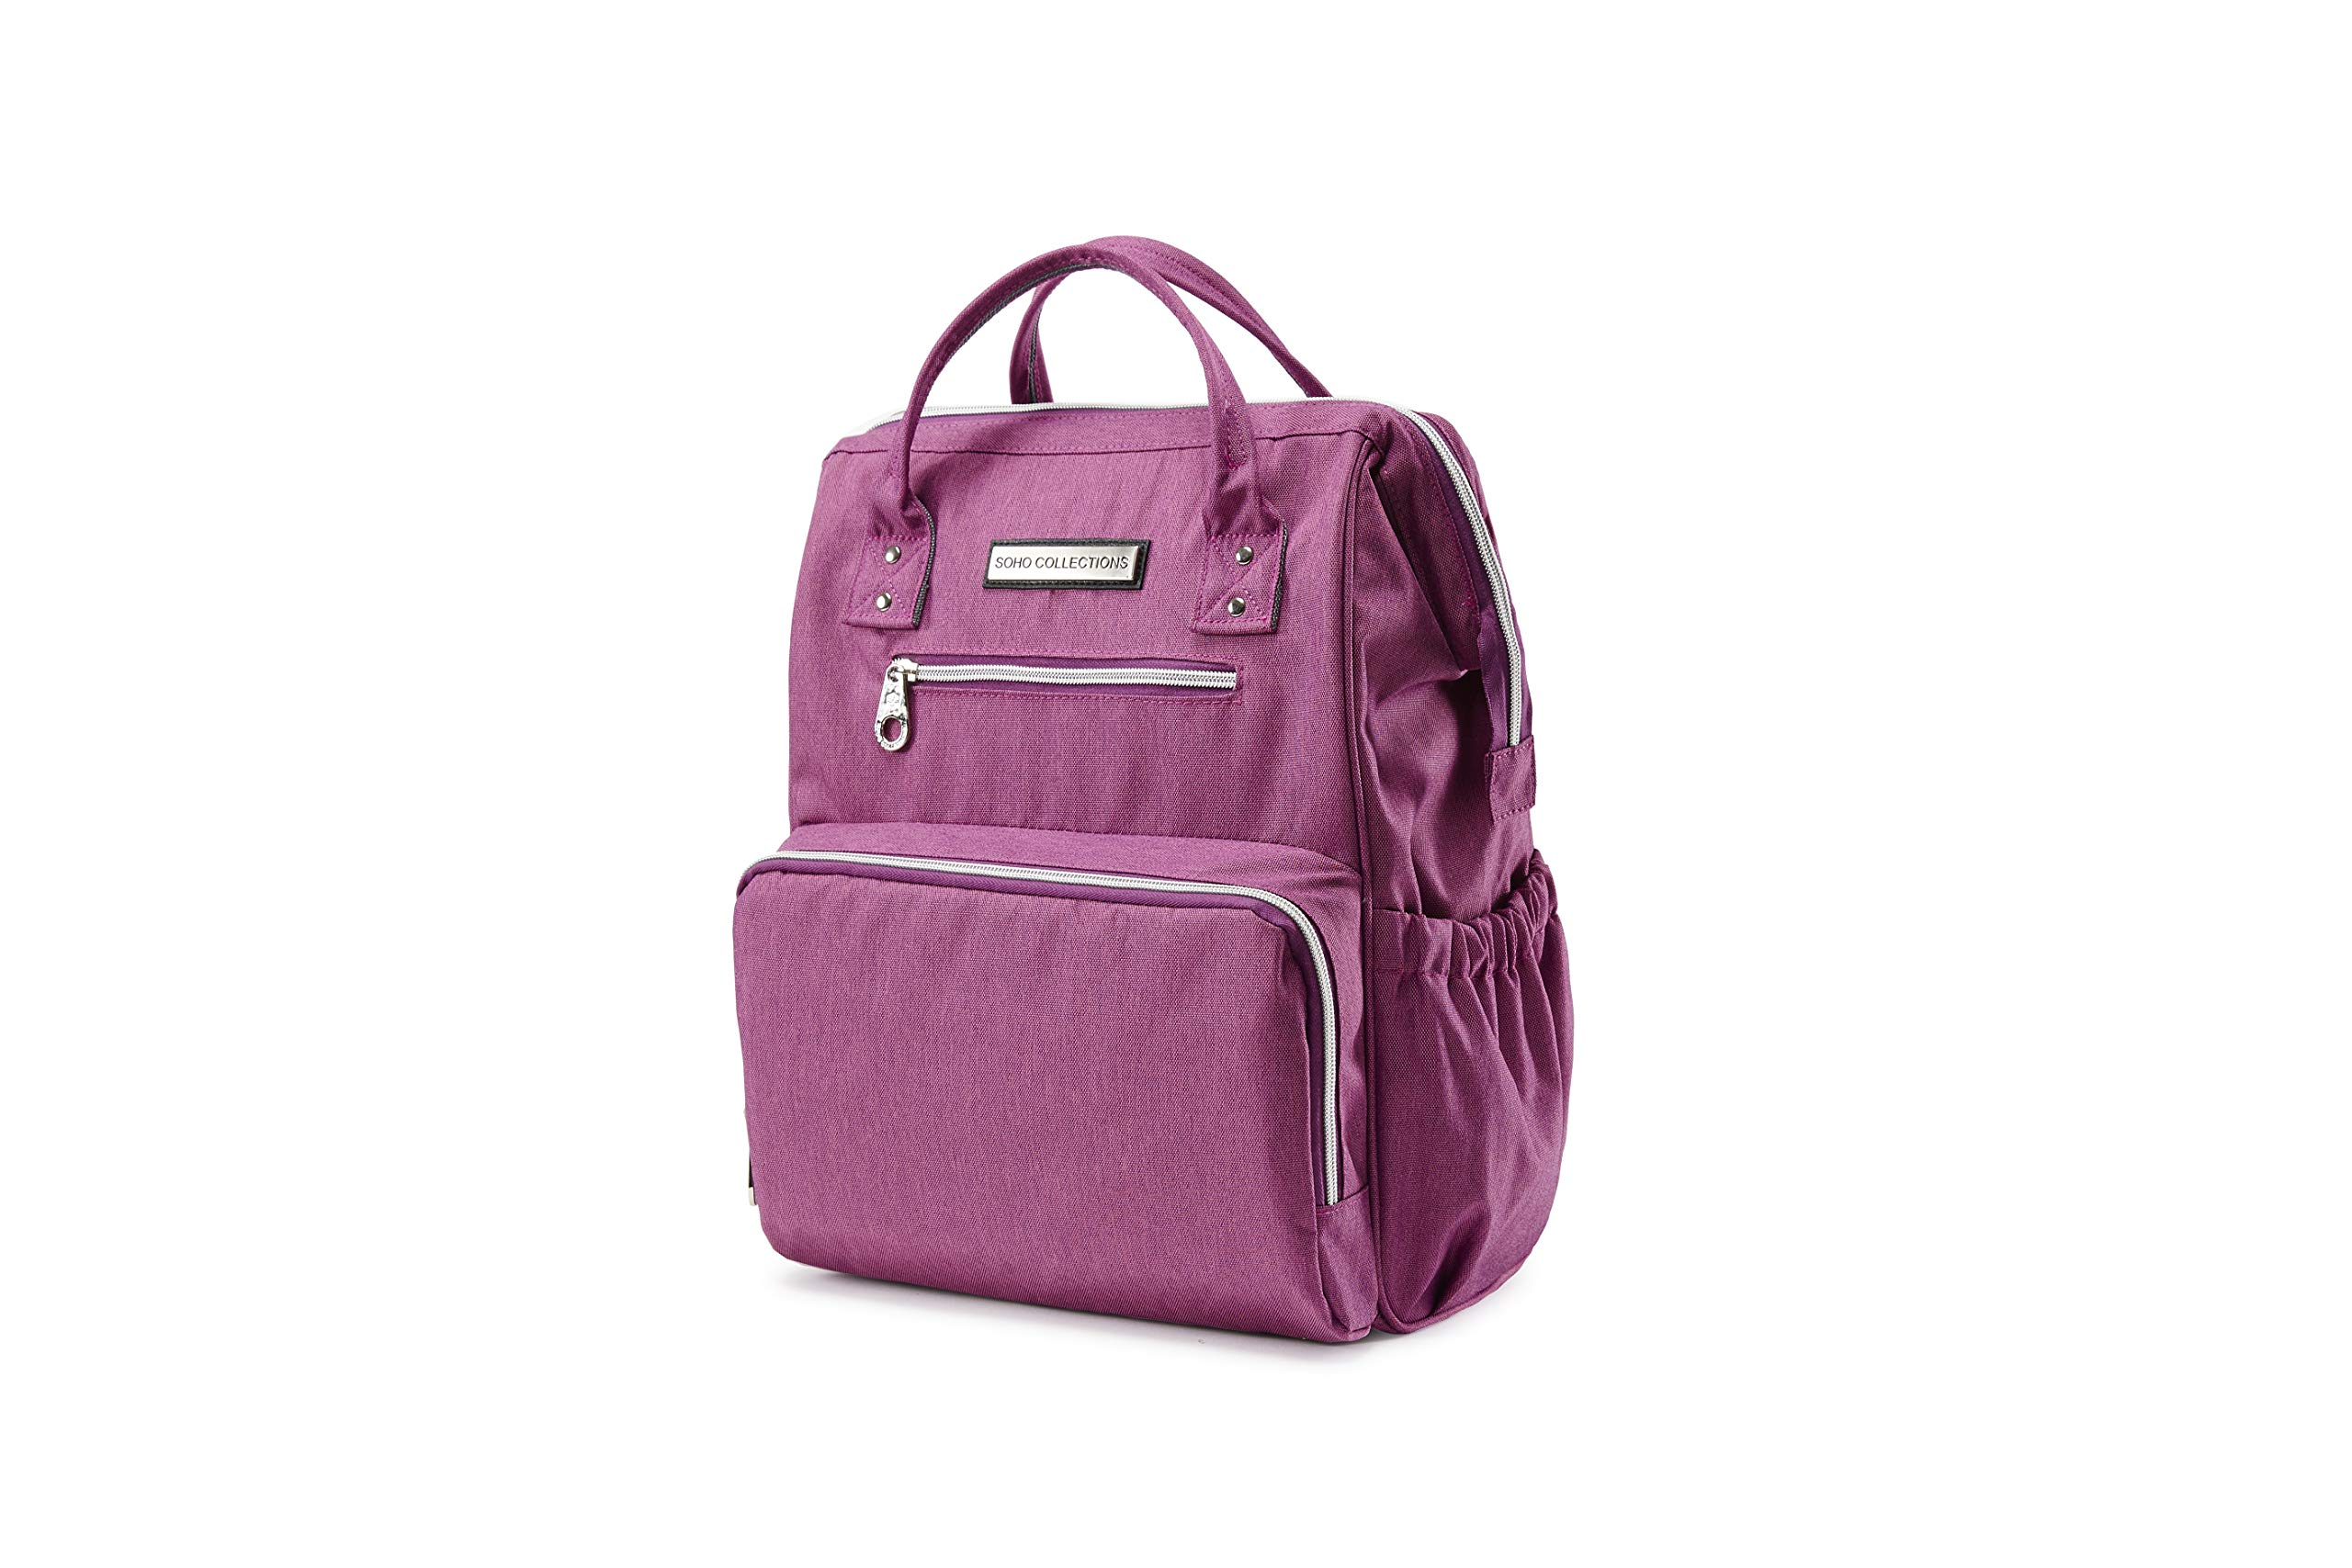 SoHo WideOpen Diaper Backpack Tote 5Pc, Lavender